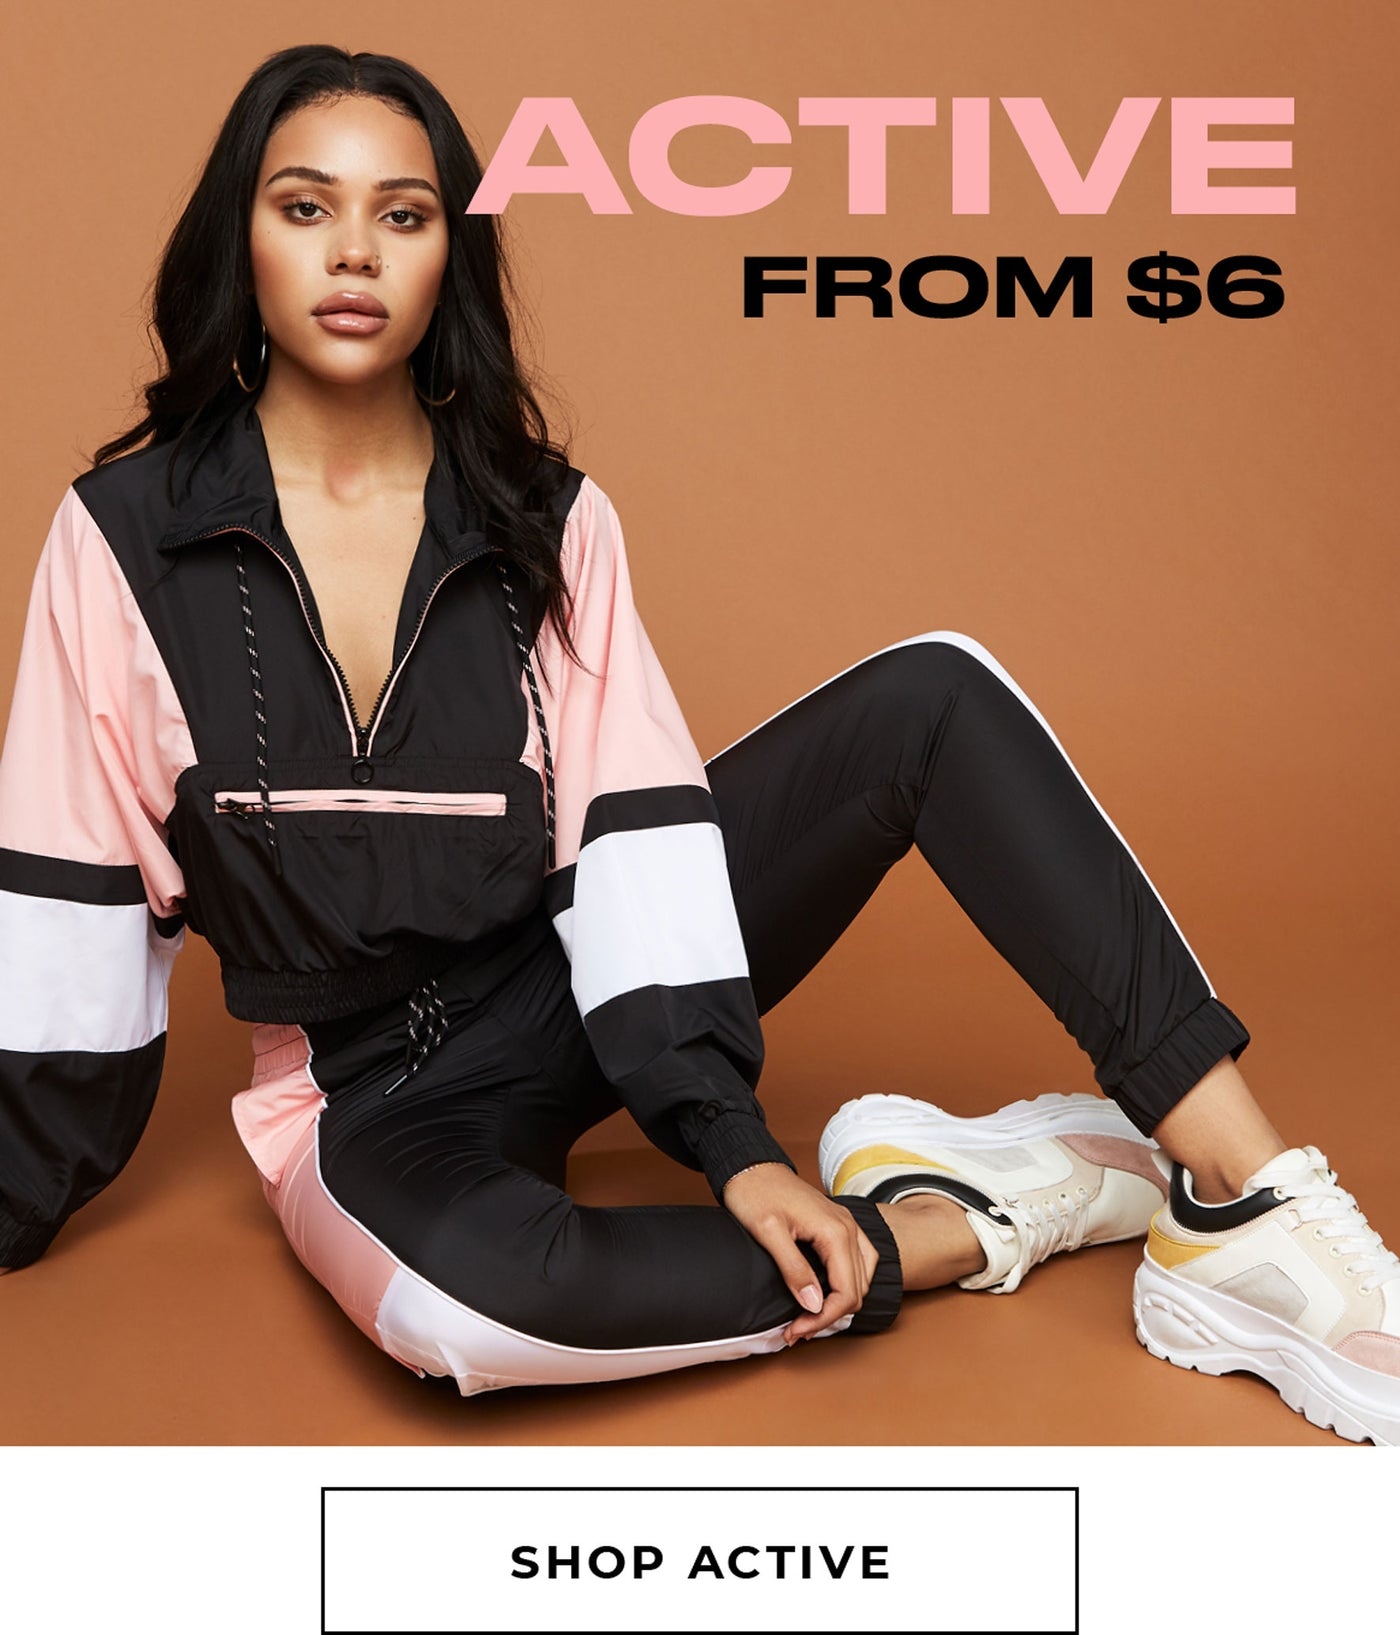 Charlotte Russe | Shop Active from $6